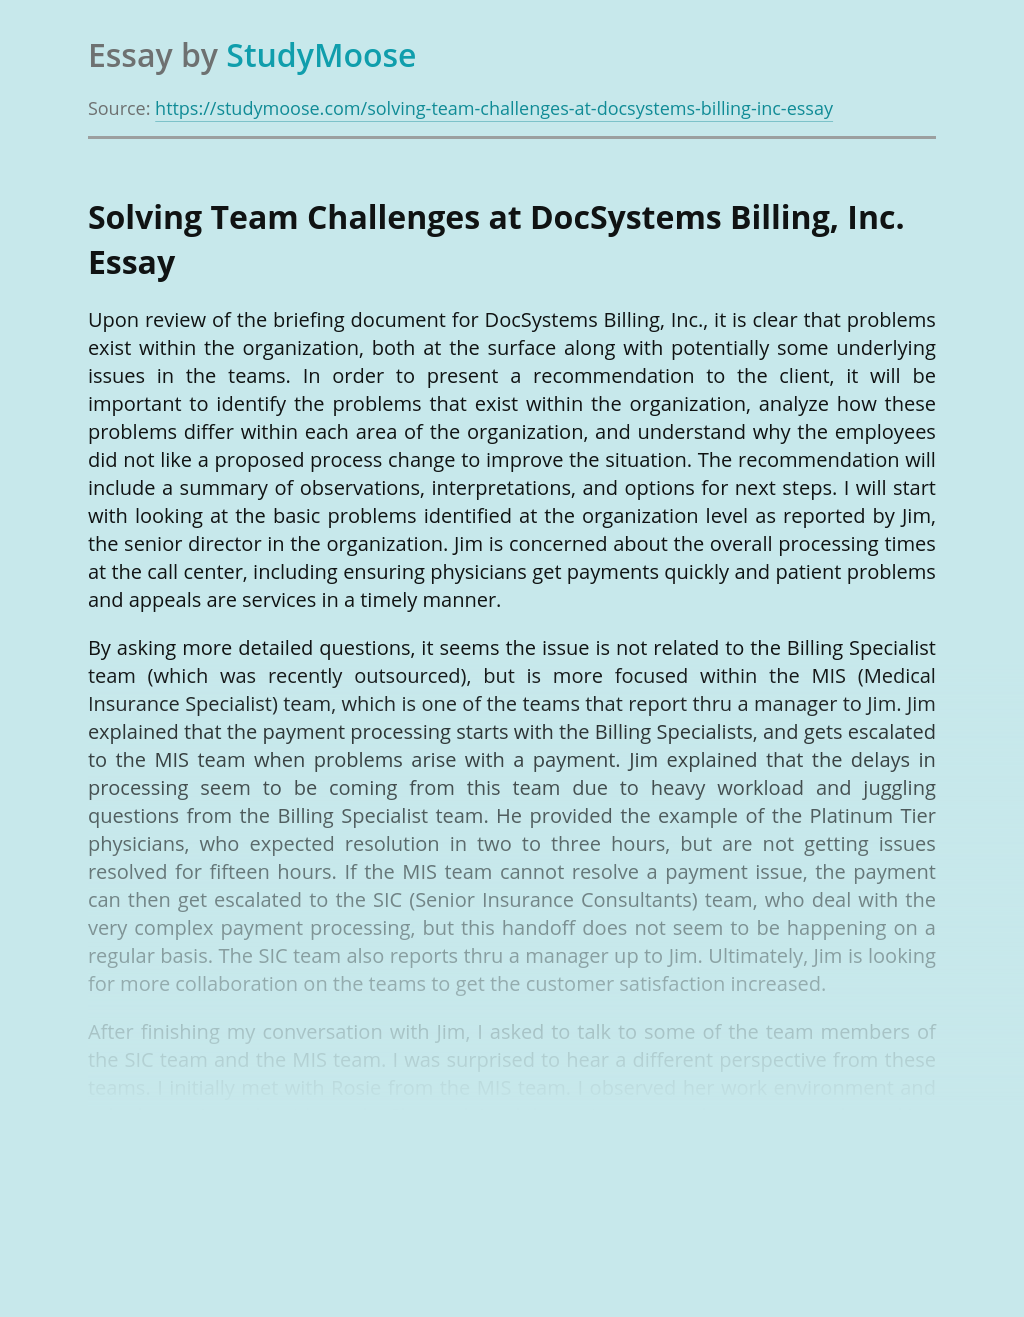 Solving Team Challenges at DocSystems Billing, Inc.